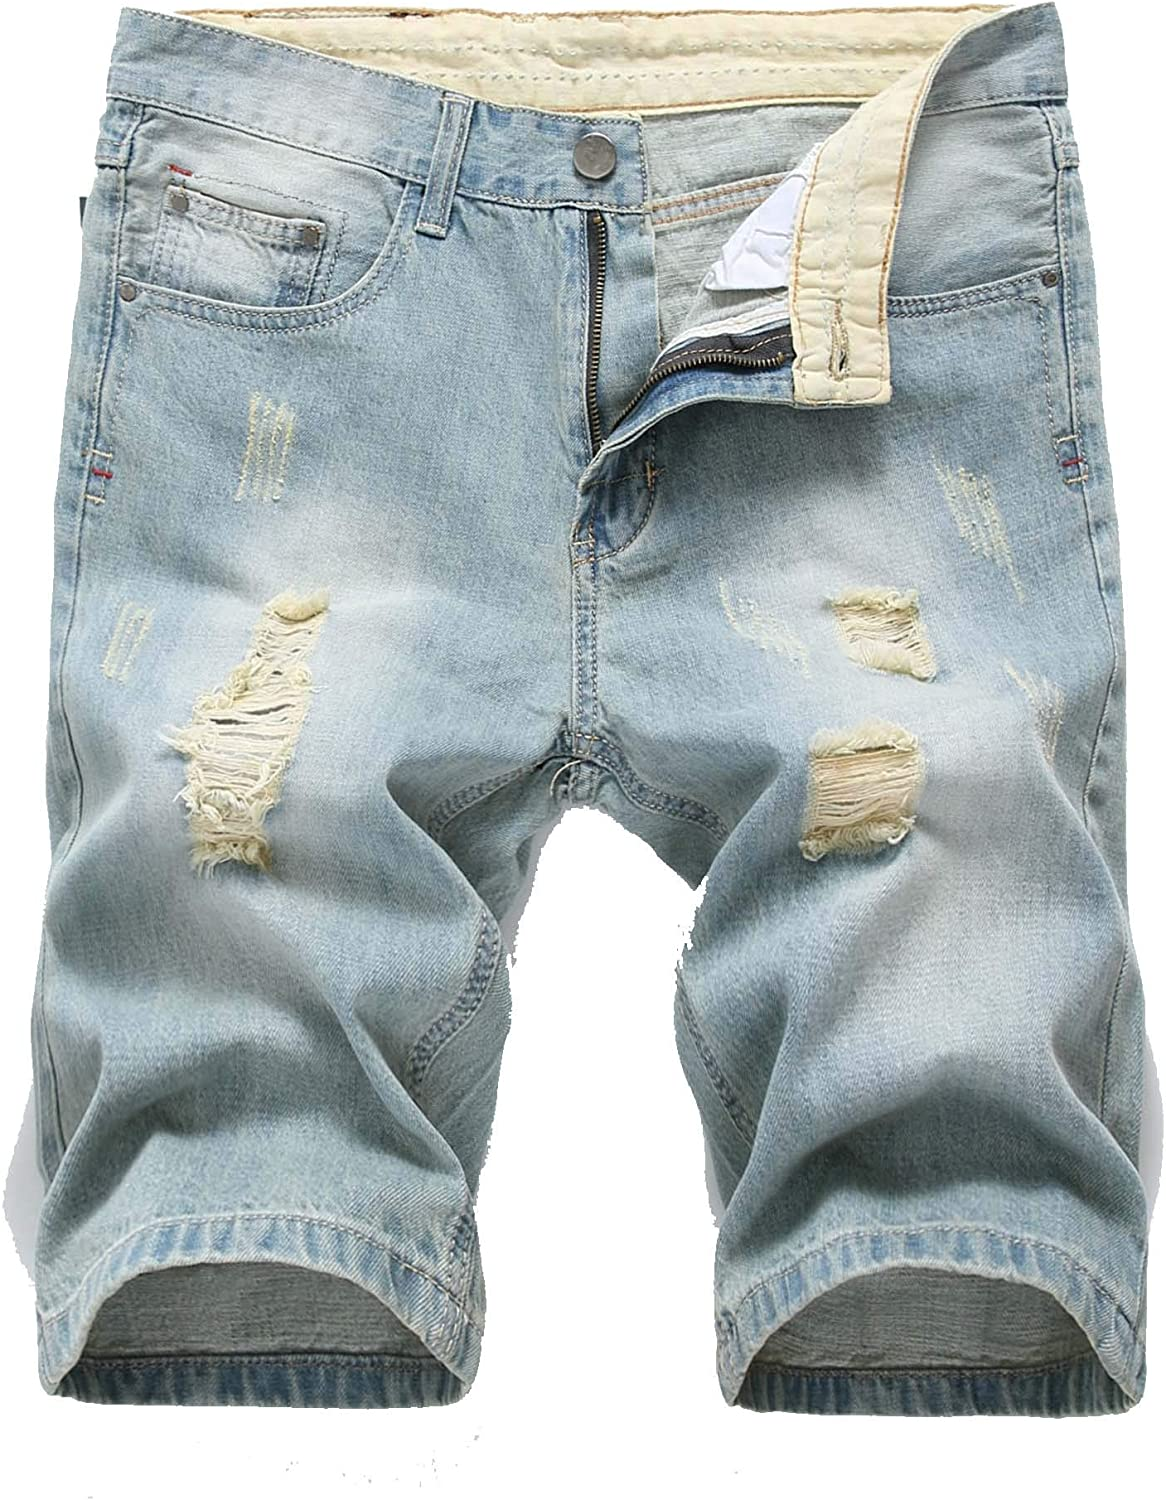 Denim Shorts for Men Washed Ripped Casual Summer Vintage Distressed Short Jeans